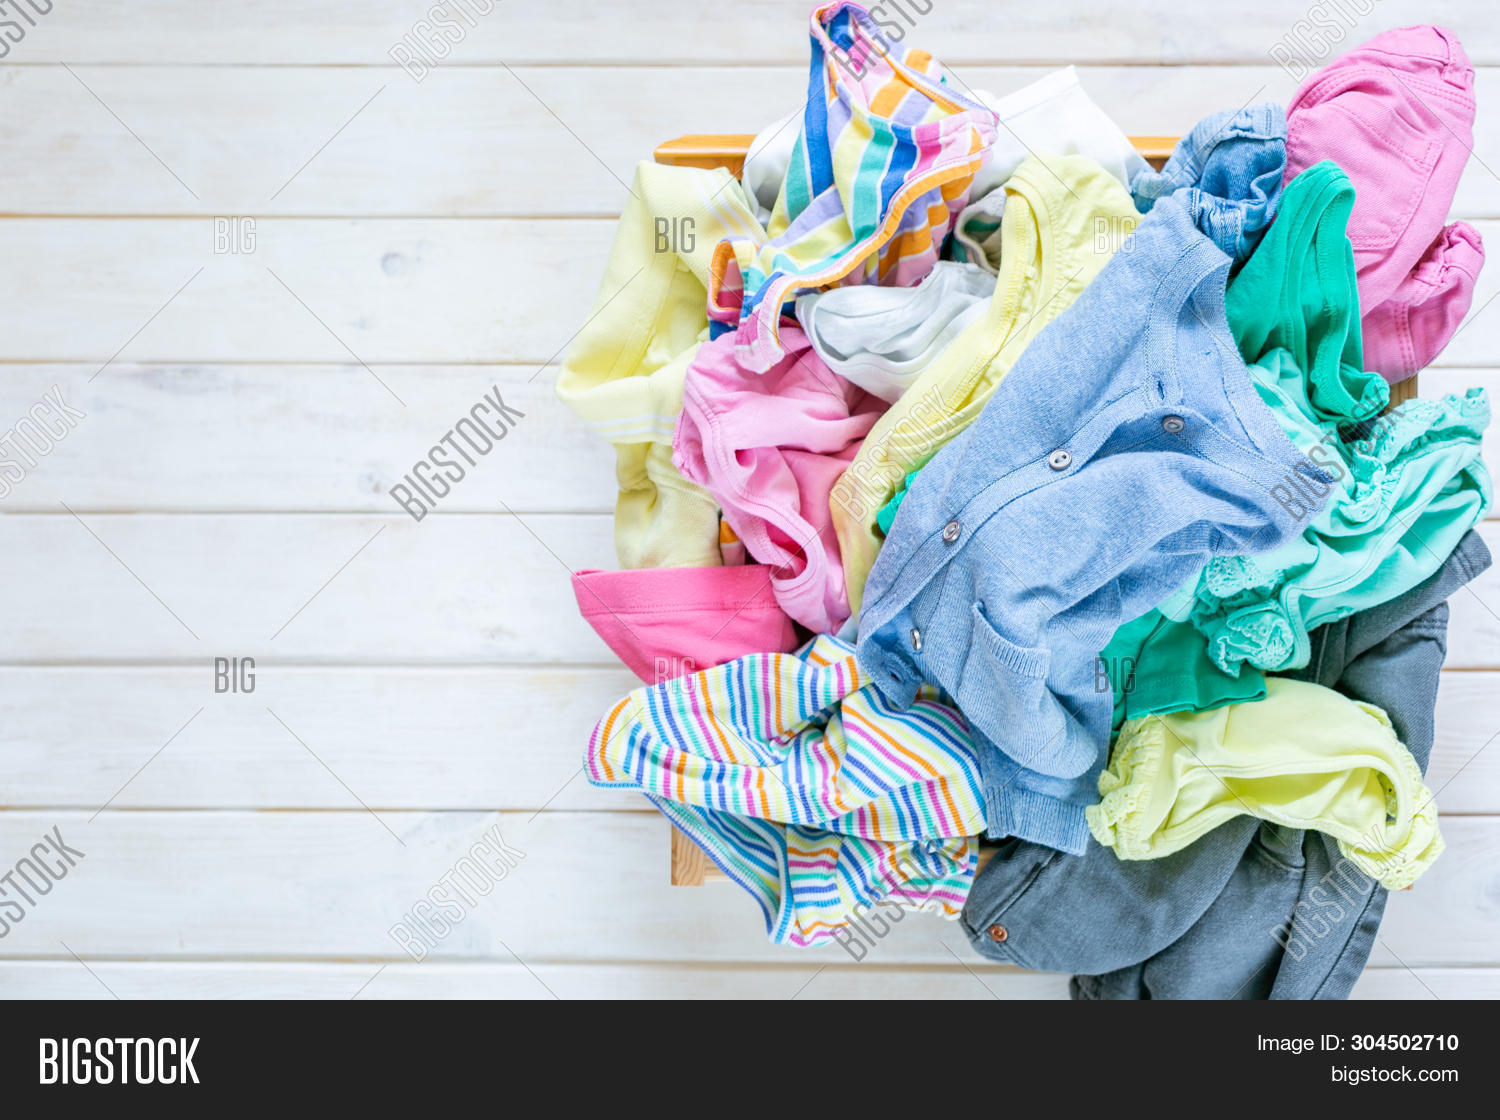 Marie Kondo Tyding Up Method Concept - Unfolded Kids Clothes In Pastel Colors, Mess, Copy Space